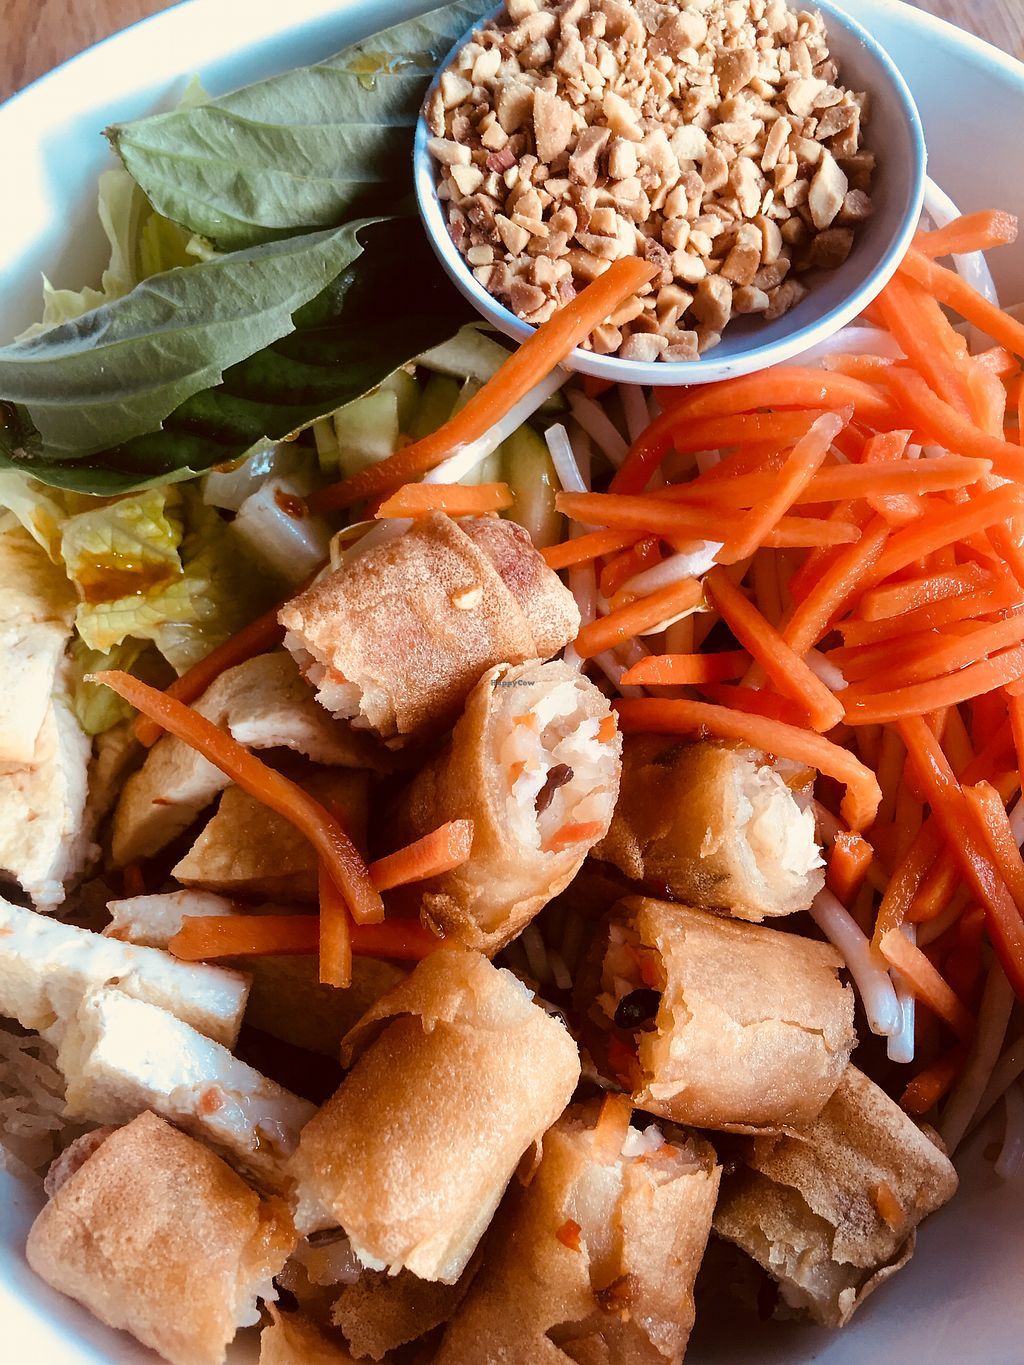 """Photo of 208 Pho & Vegan  by <a href=""""/members/profile/ChereseTarter"""">ChereseTarter</a> <br/>Bun Chay  <br/> March 24, 2018  - <a href='/contact/abuse/image/93583/375039'>Report</a>"""